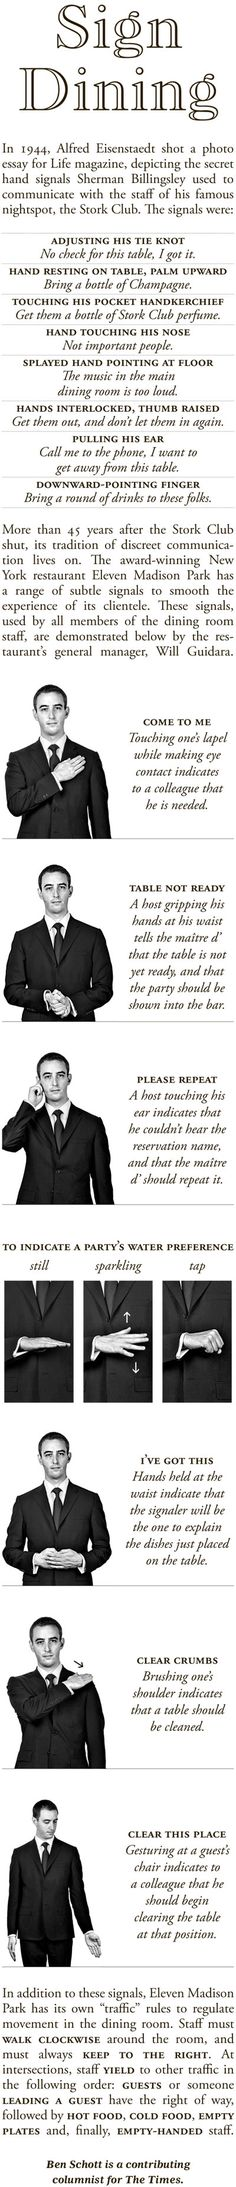 """The hand signals and gestures (""""made up"""" in this case) in dining to silently communicate among the restaurant staff, the guest is none the wiser."""